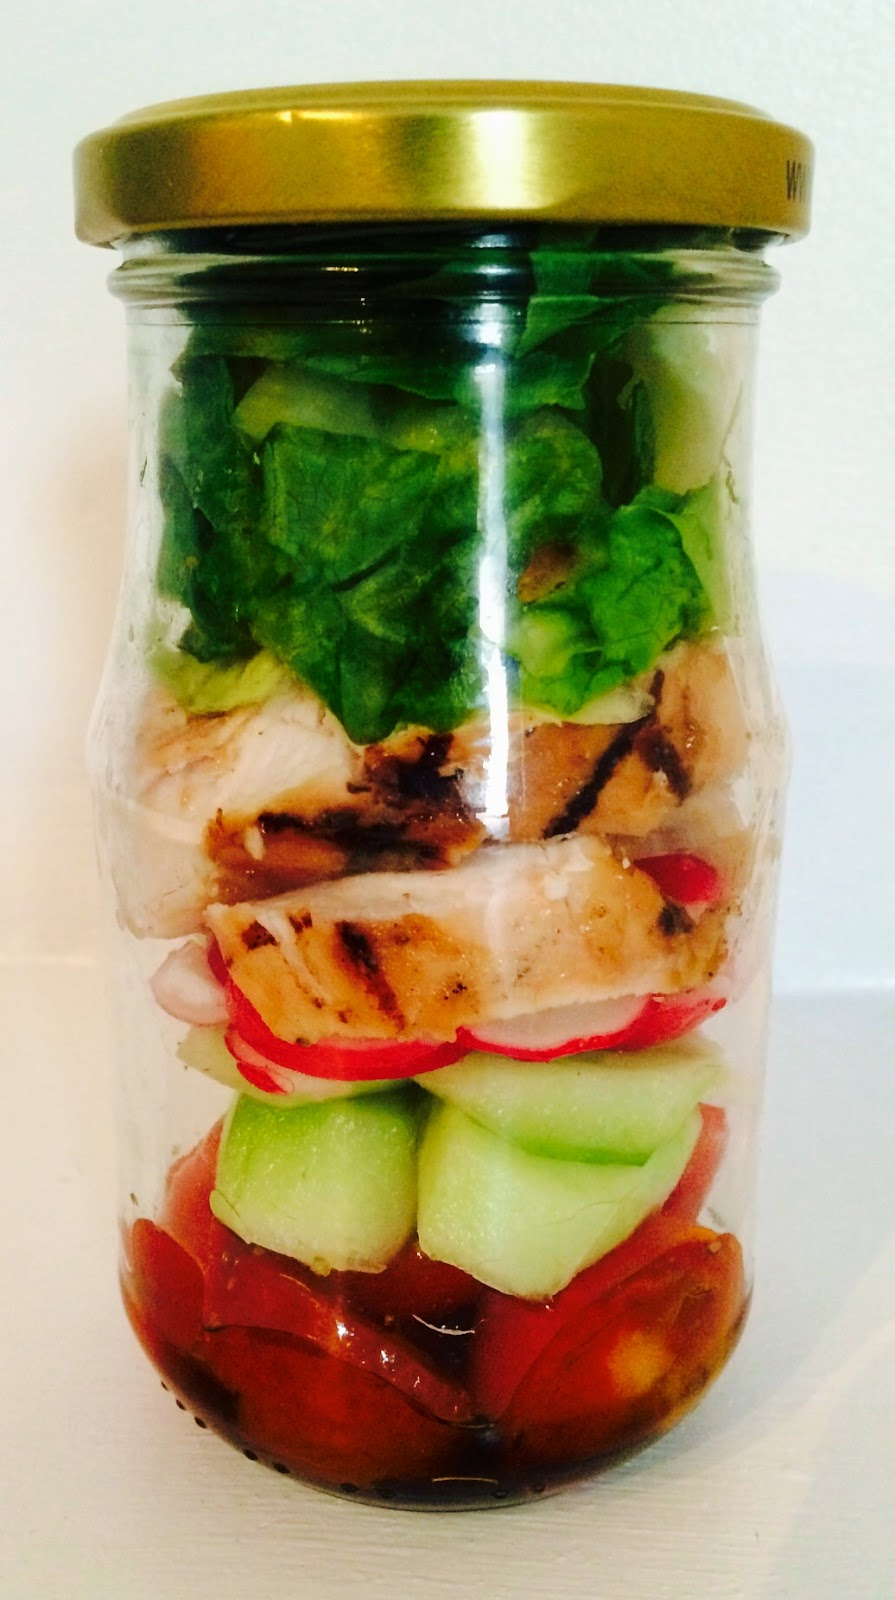 Chicken in a Mason jar, mason jar salad, salad in a jar, chicken salad, lunch idea's